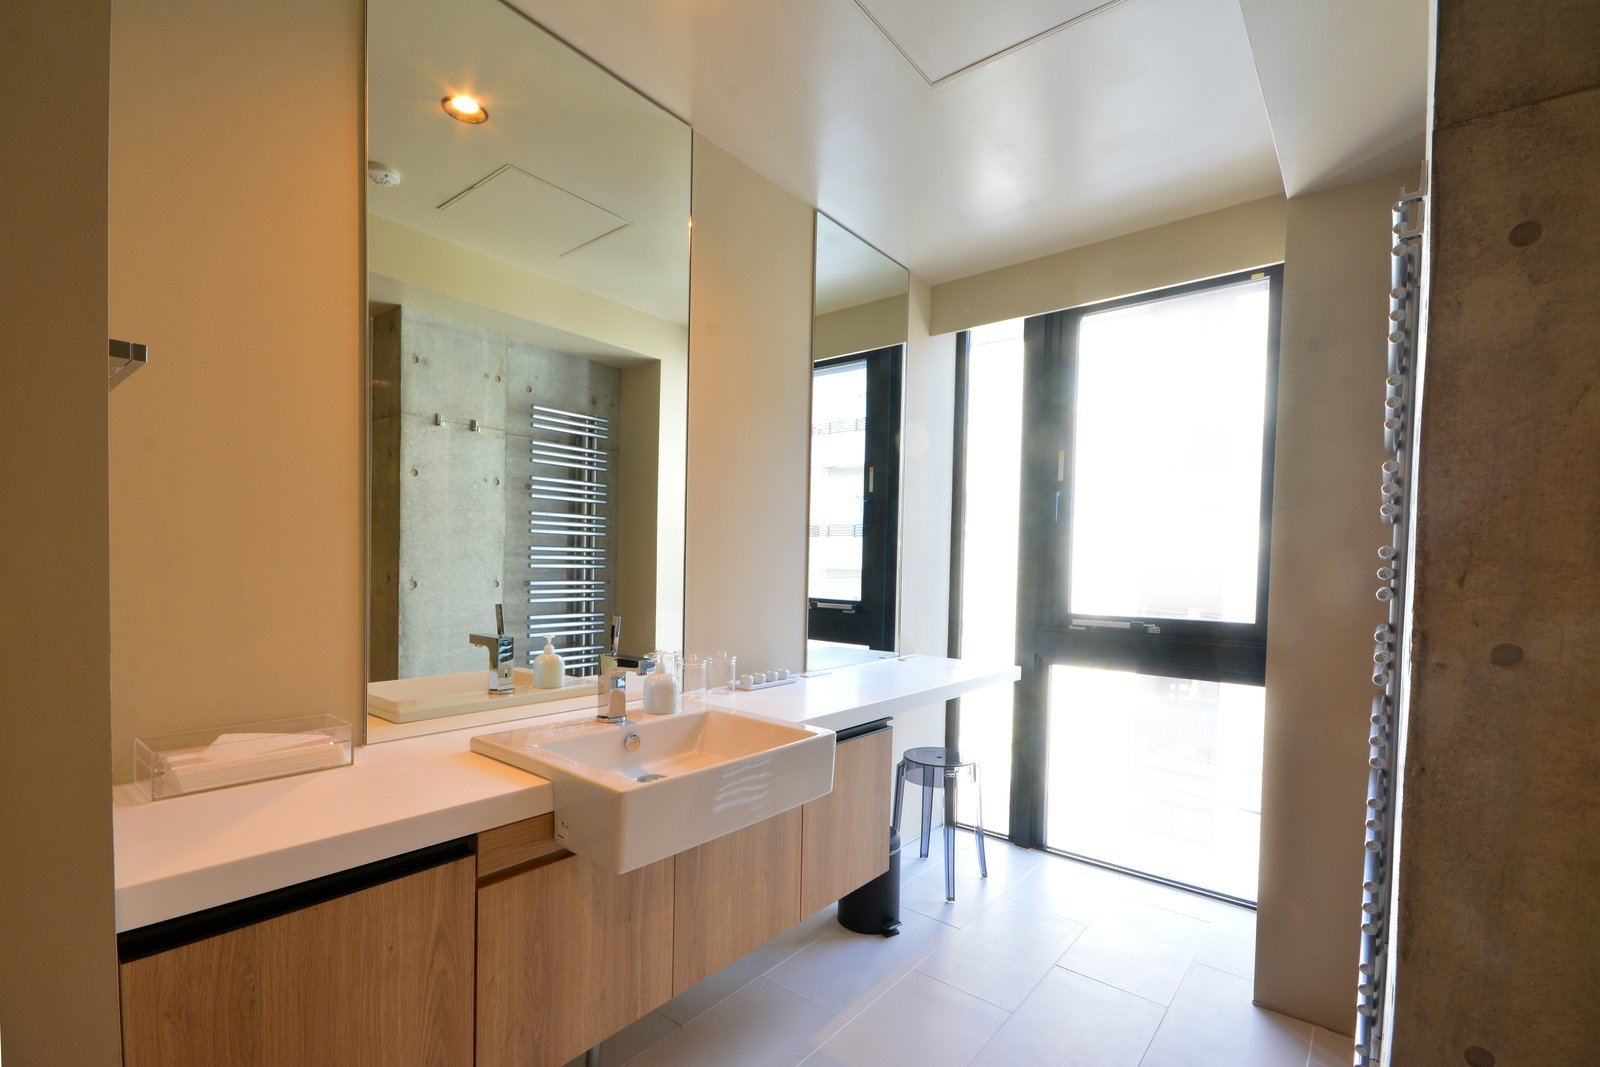 Muse niseko apt 301 bathroom large